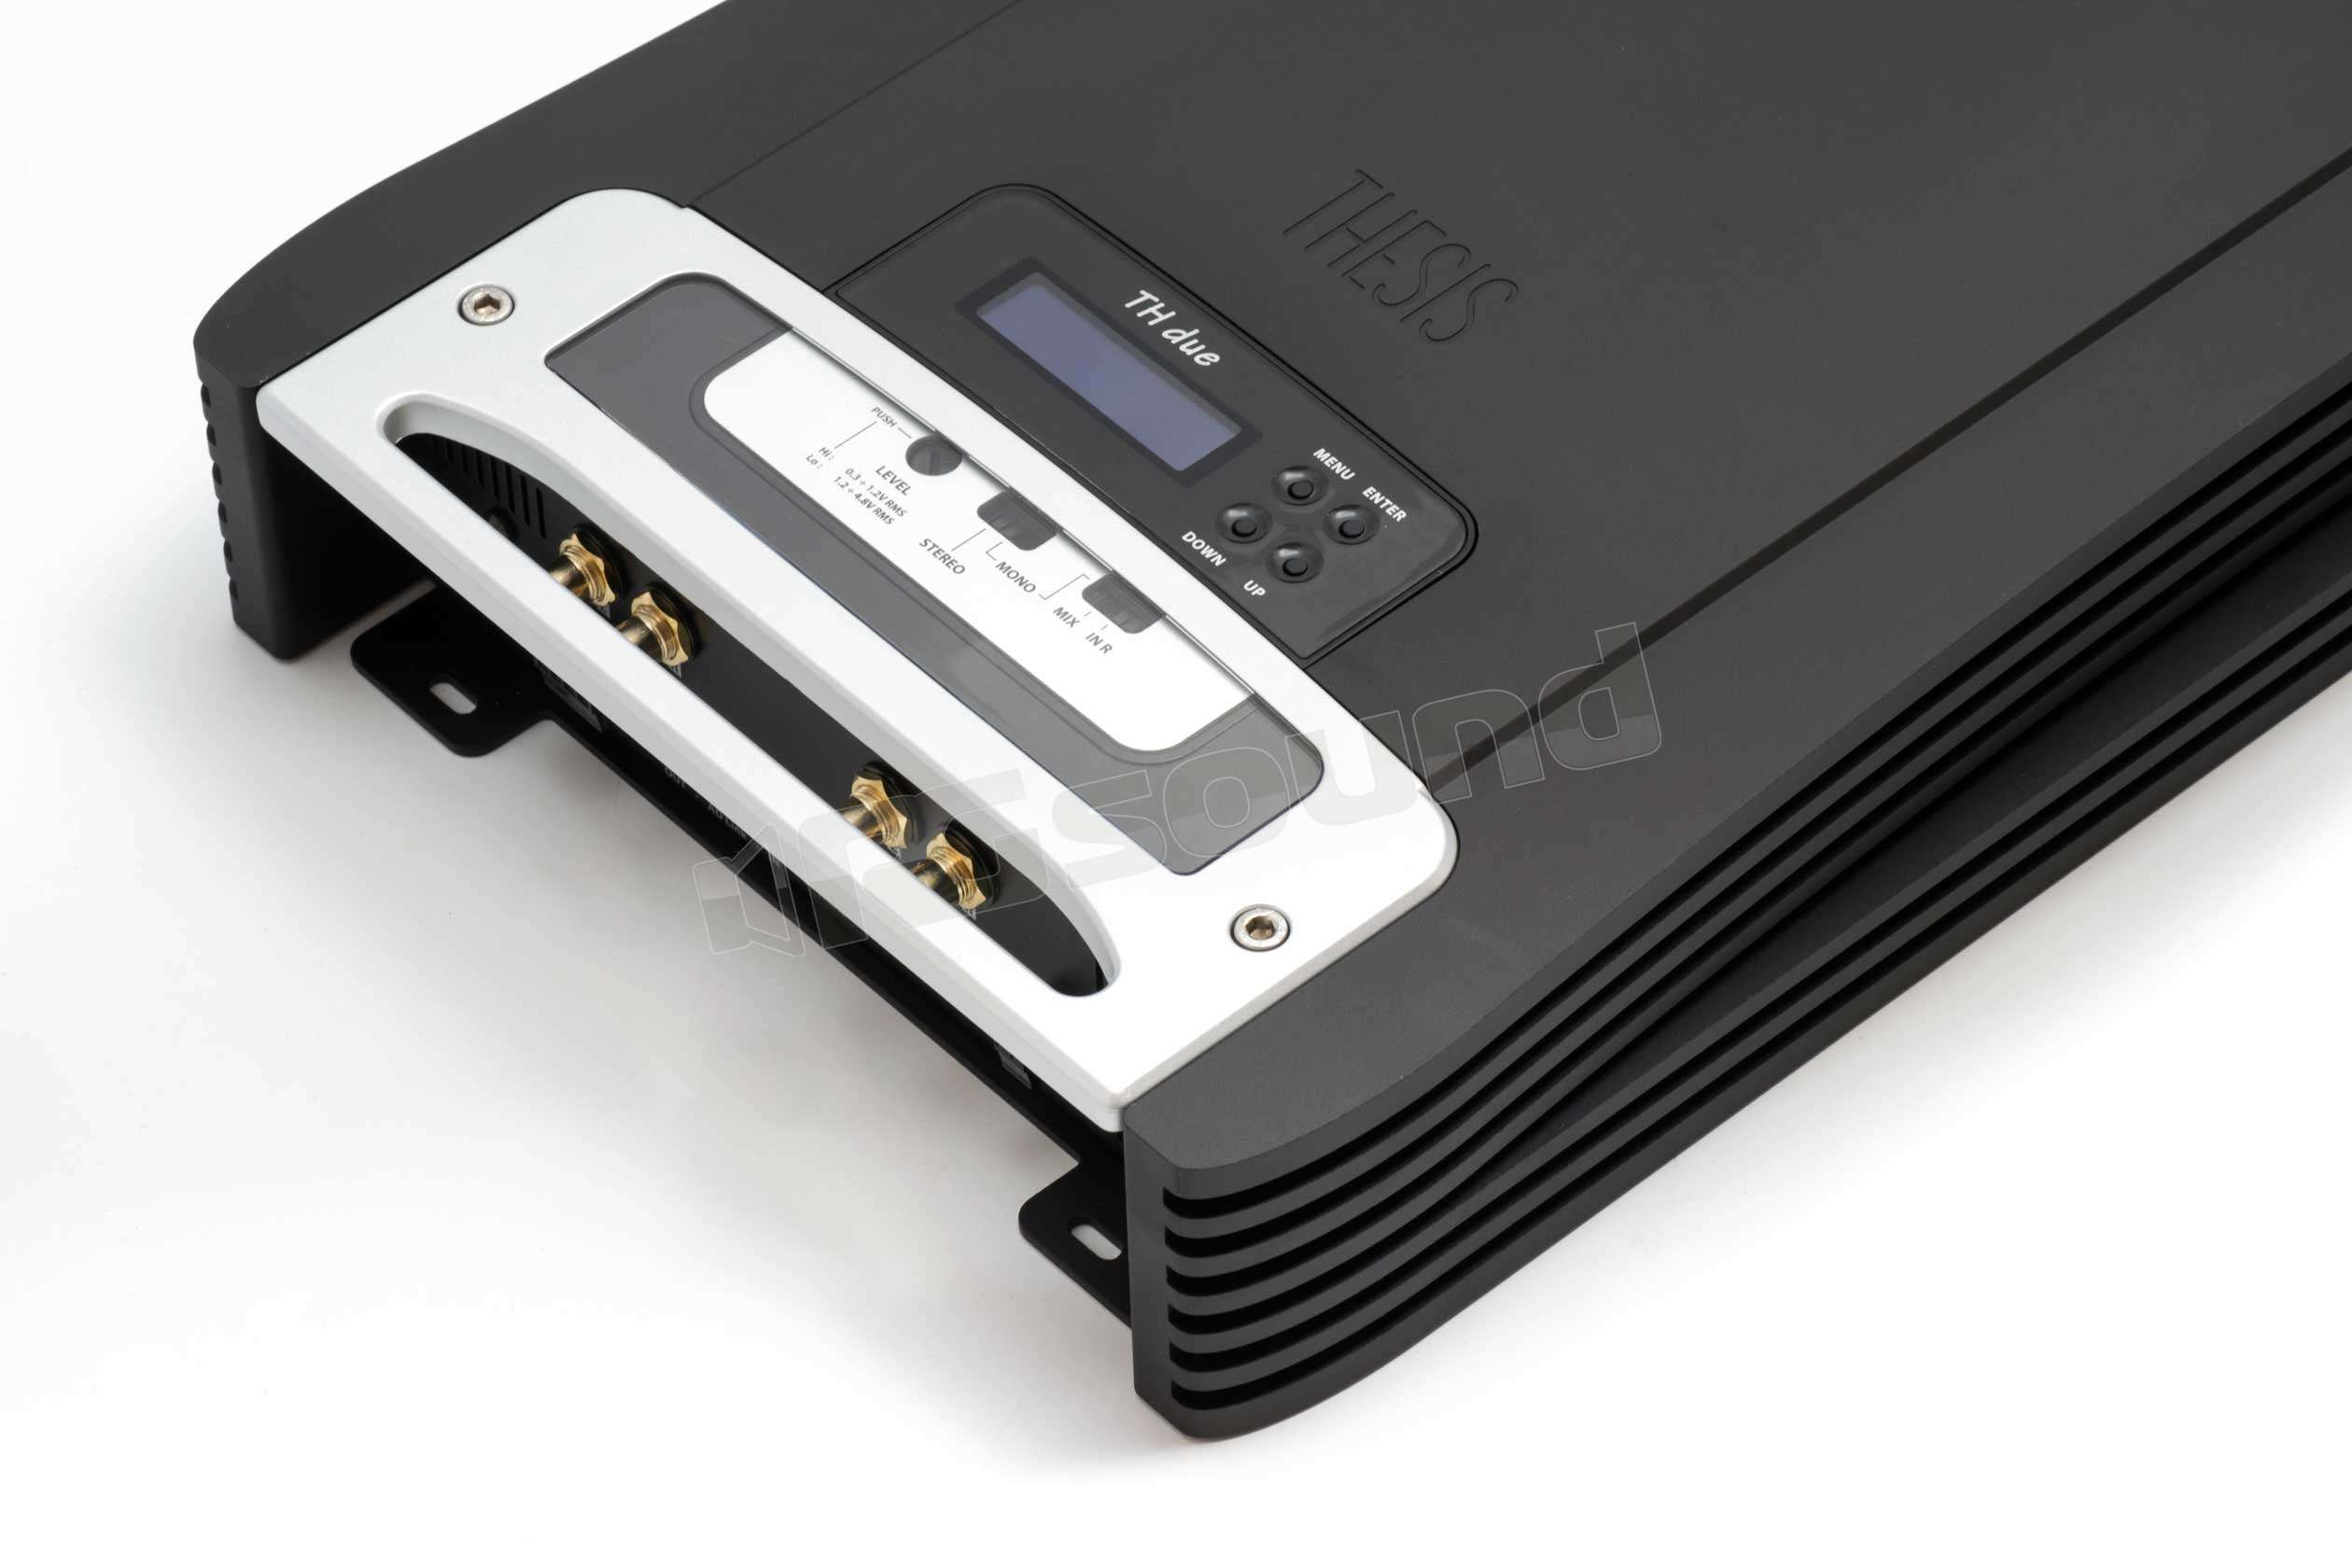 audison thesis th The audison thesis car amplifier programme genuinely pushes the boundaries of car audio excellence and rewrites the rules of car audio amplification  audison th due.